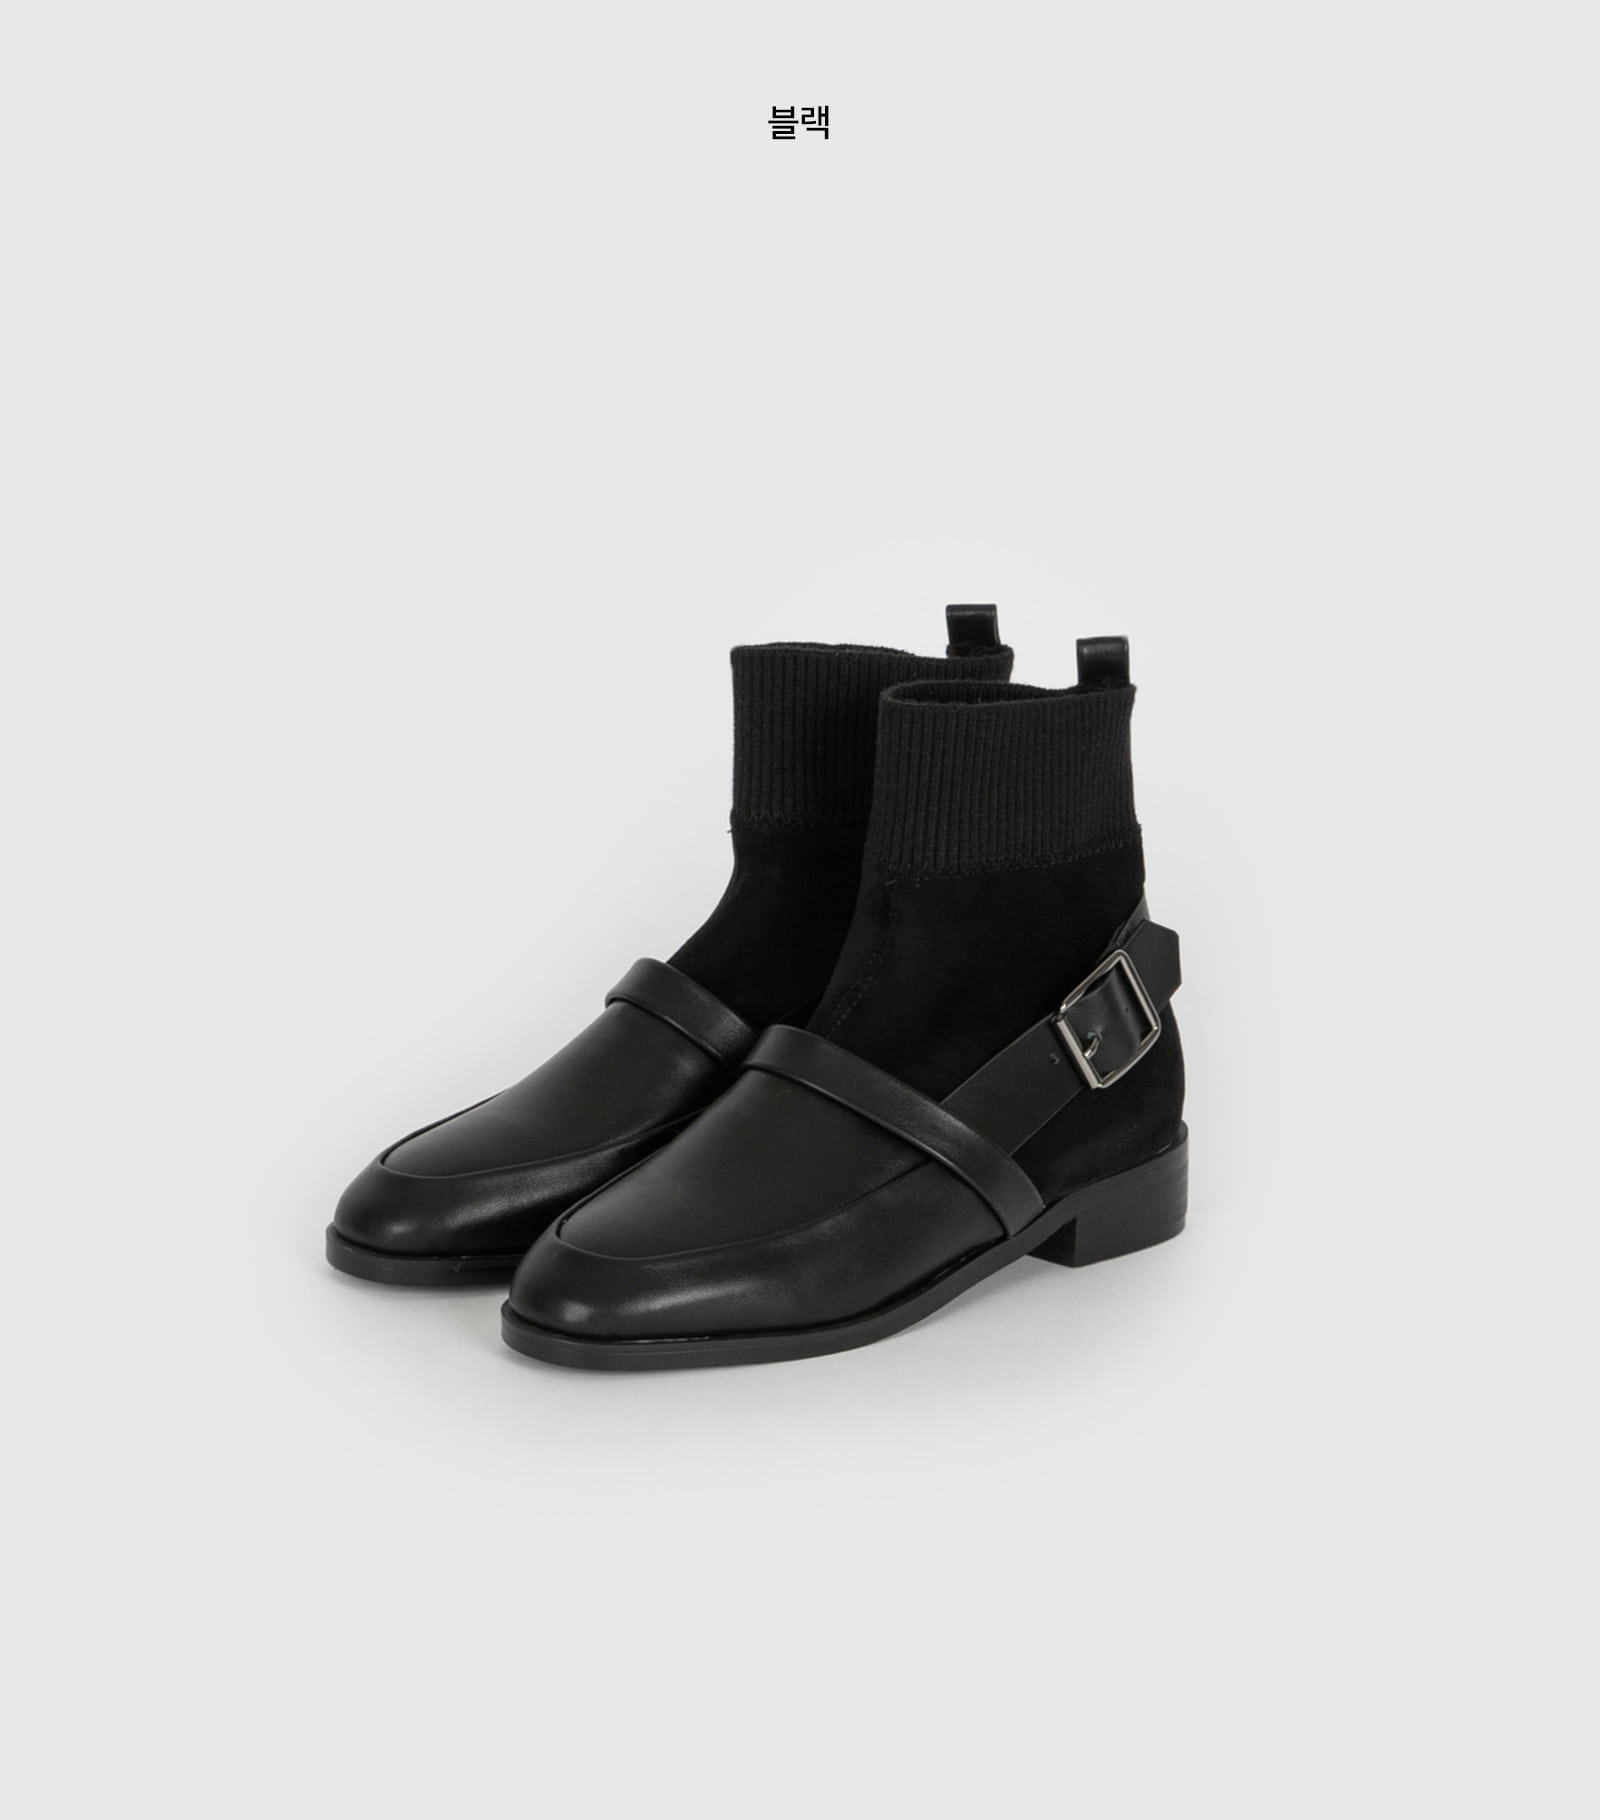 Forem Sax loafers